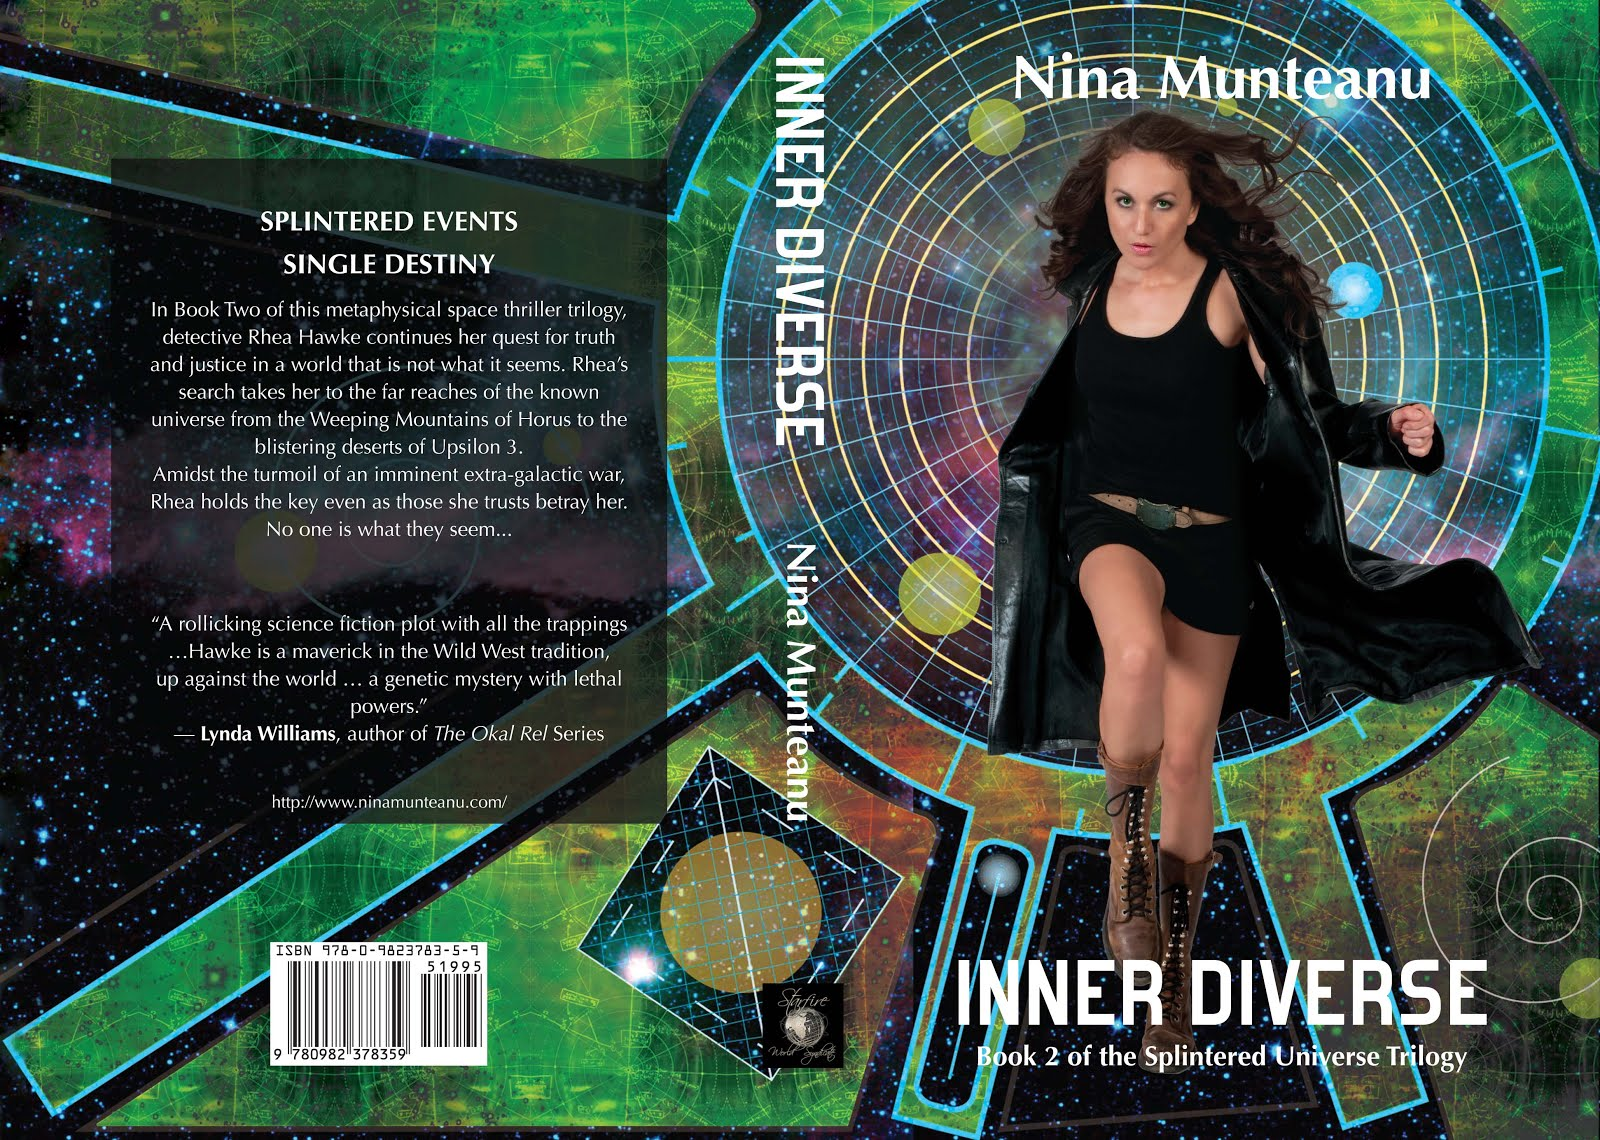 Inner Diverse cover art by Costi Gurgu